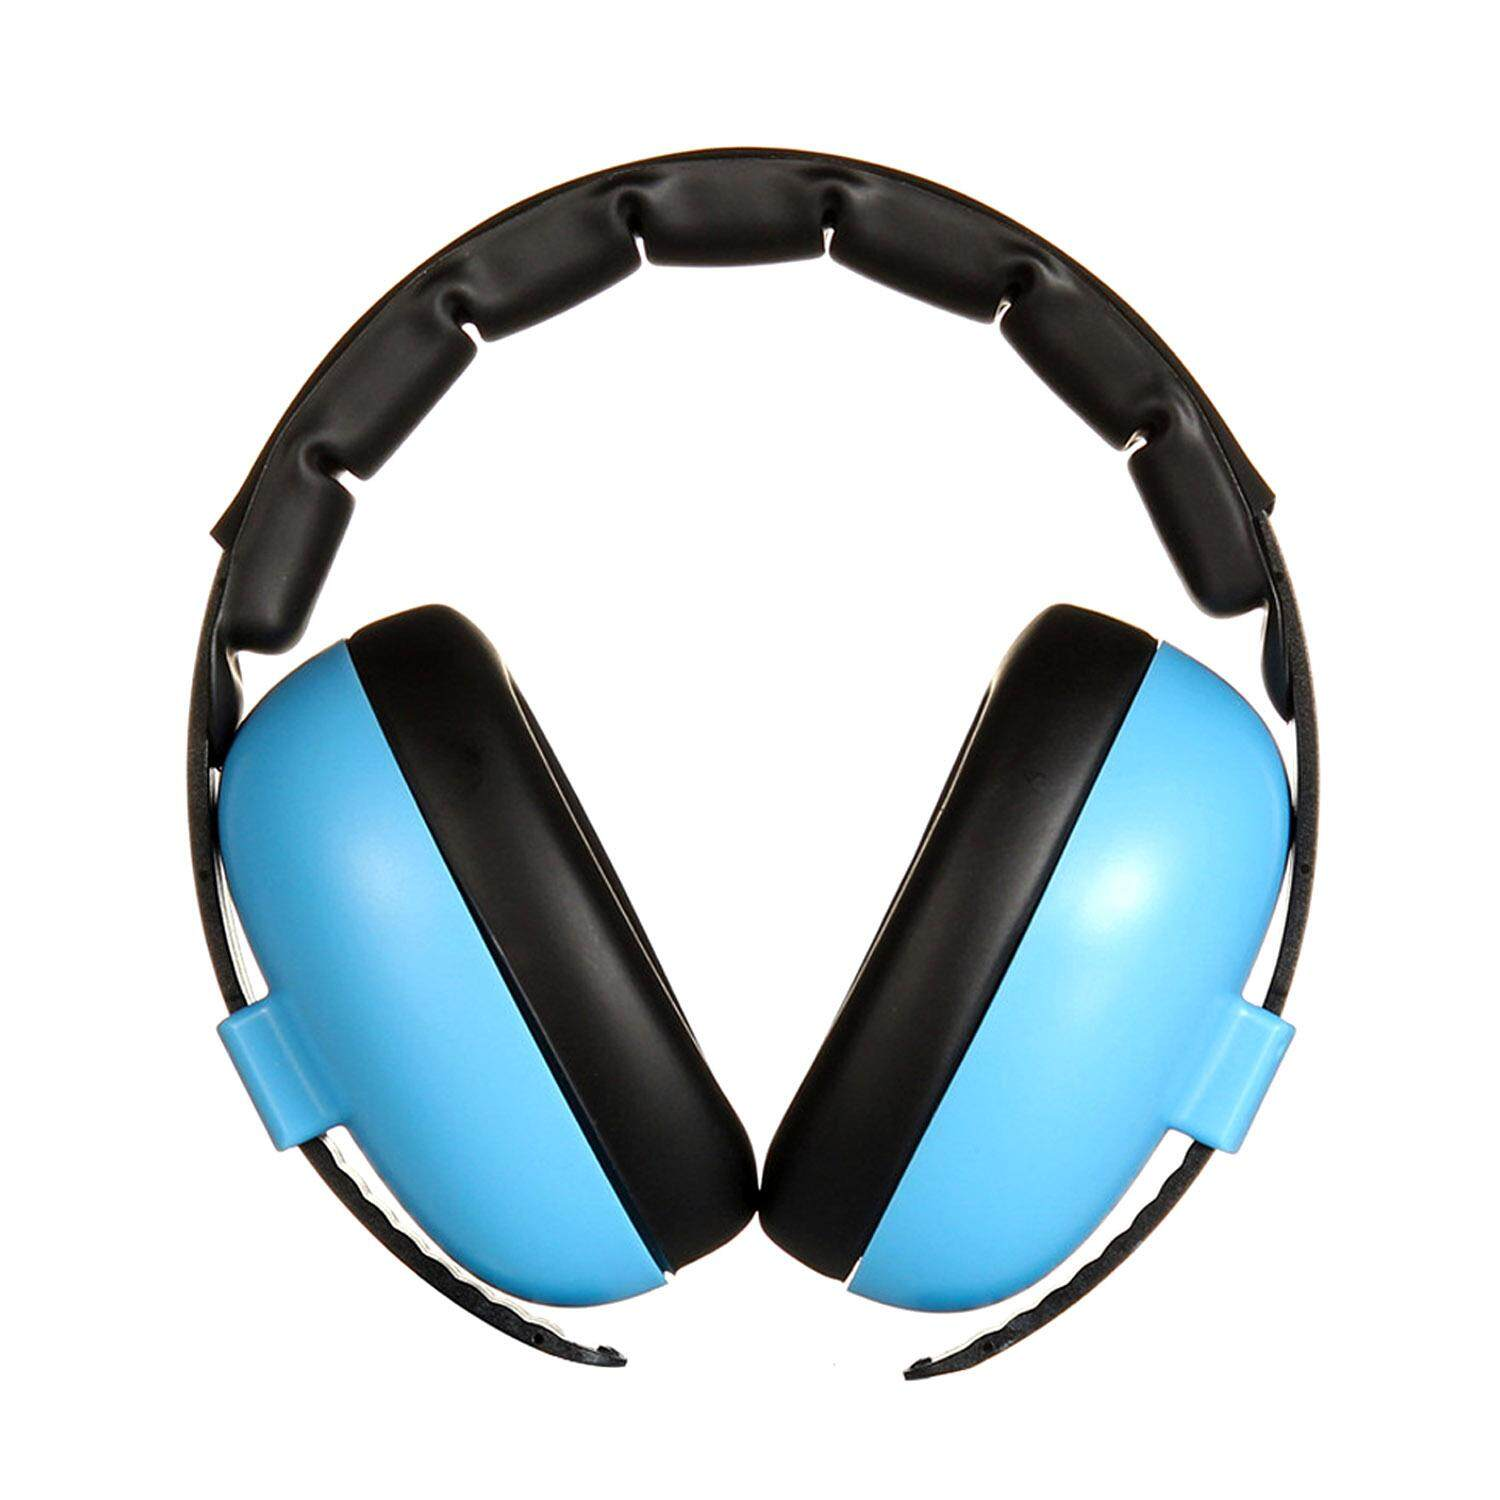 Safety Baby Ear Hearing Protection Noise Cancelling HeadPhones Ear Muffs Defenders Headset for Newborn Infants Adults Sleeping Studying Airplane